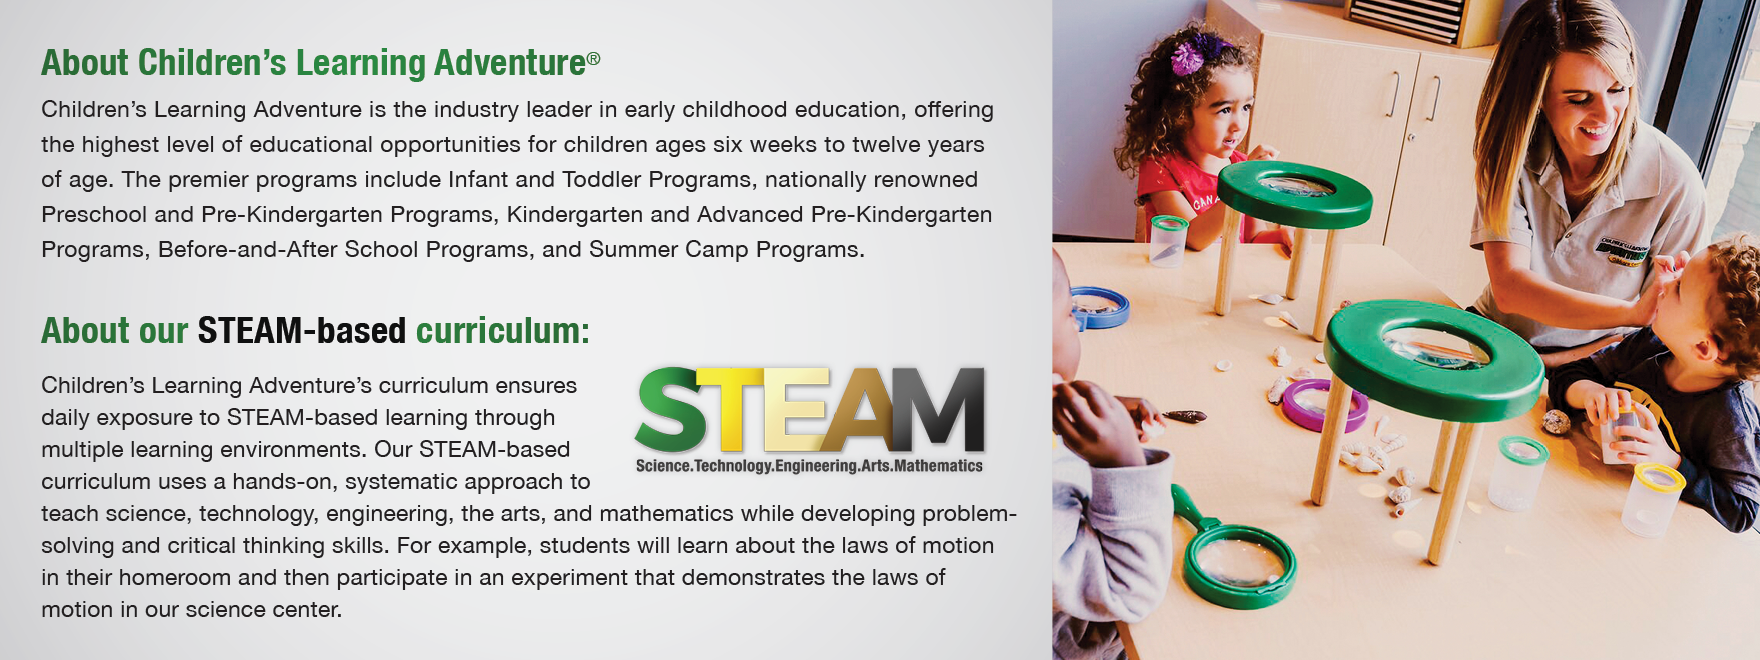 education kids programs STEAM Image